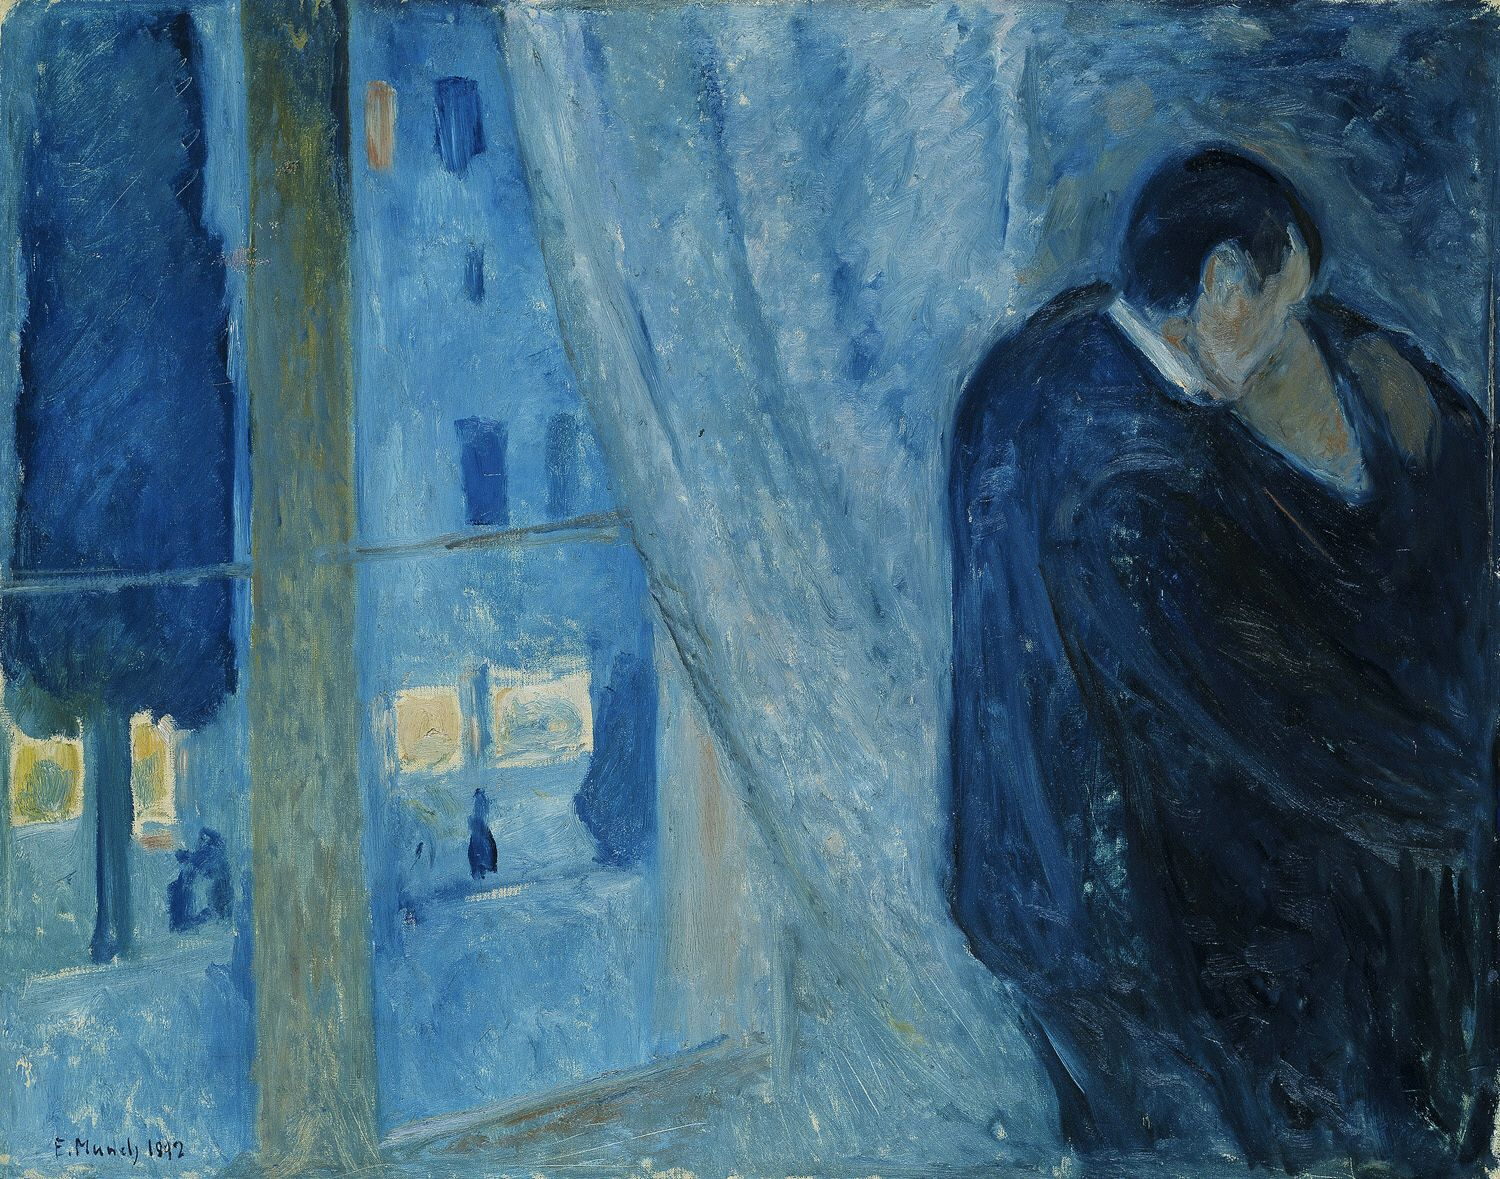 Edvard_Munch_-_Kiss_by_the_window_(1892)